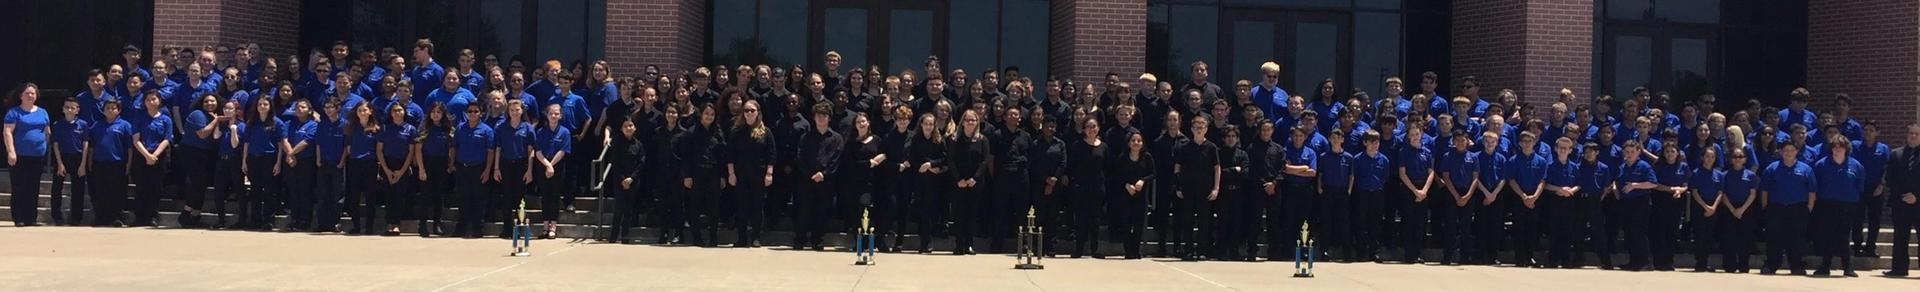 BMS Bands 2018 at Joshua Contest